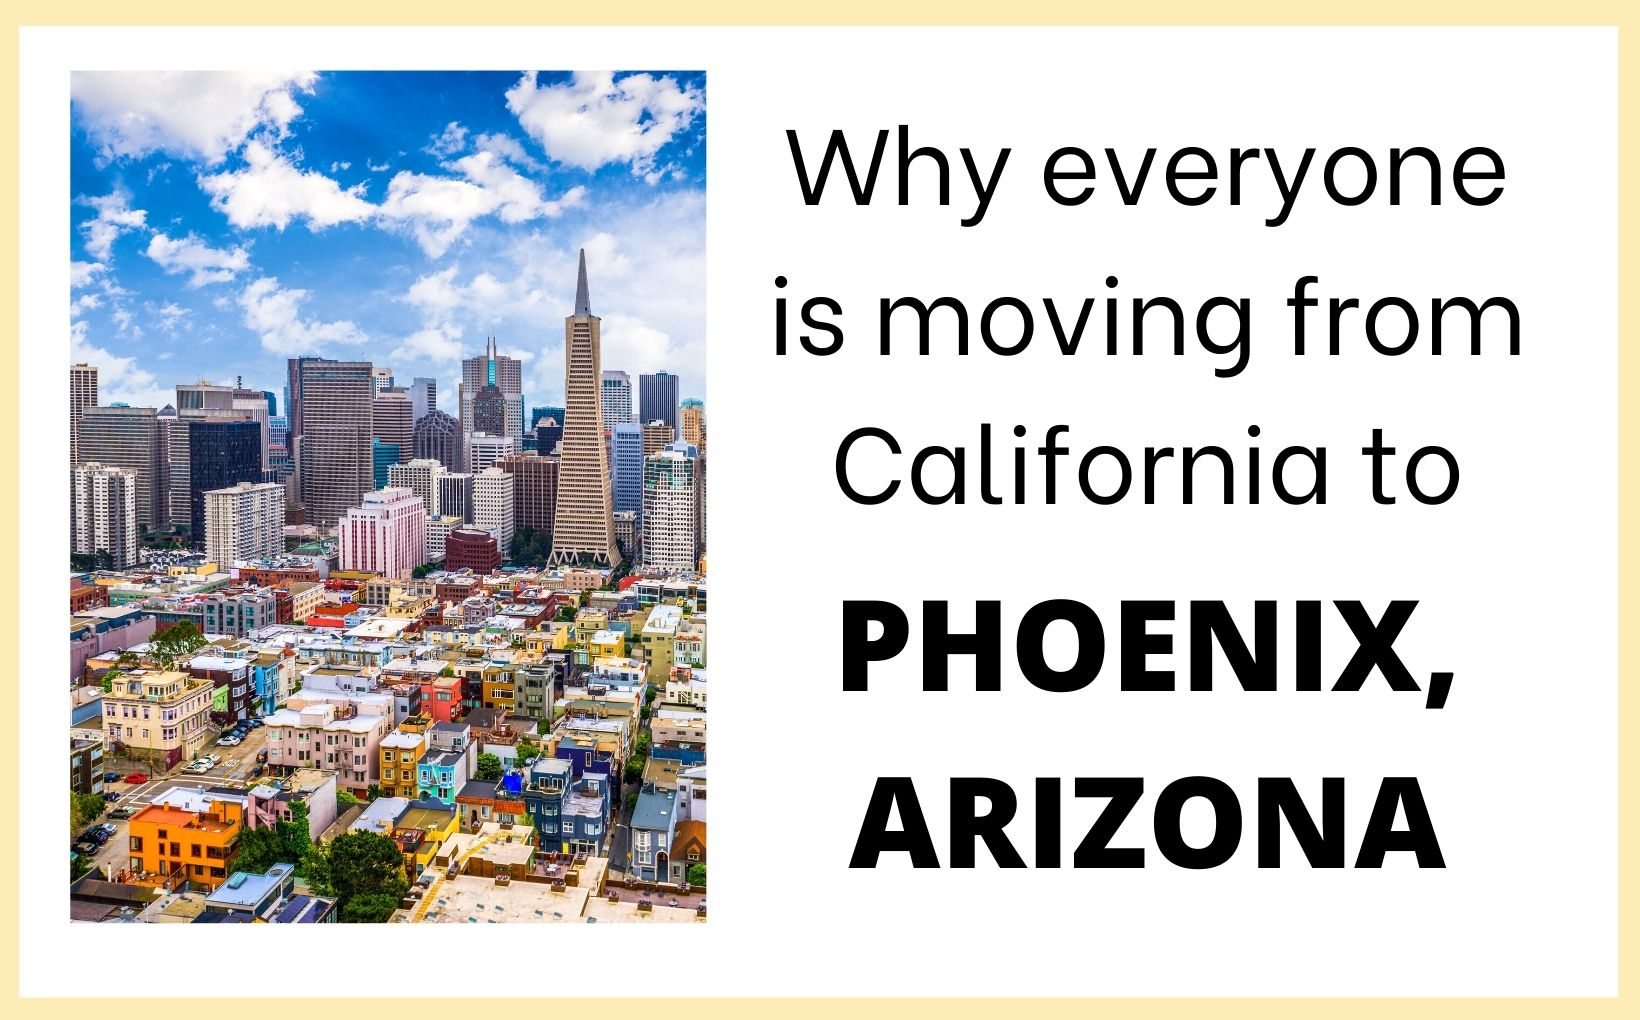 Reasons why everyone is moving from CA to Phoenix feature image